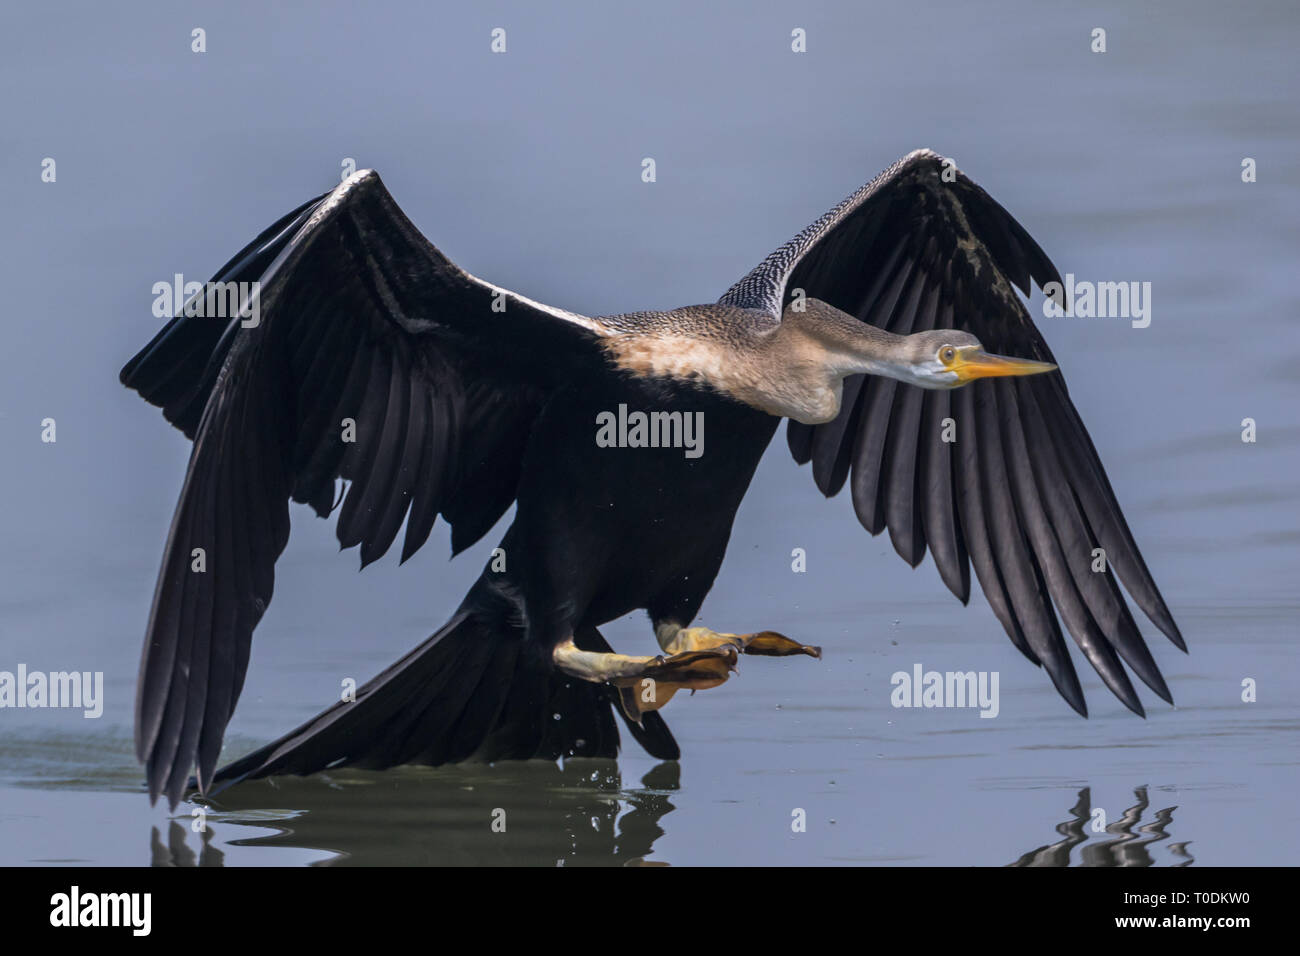 The Oriental darter or Indian darter (Anhinga melanogaster) catching and eating the fish in the lake at Bharatpur Bird Sanctuary, Rajasthan, India - Stock Image